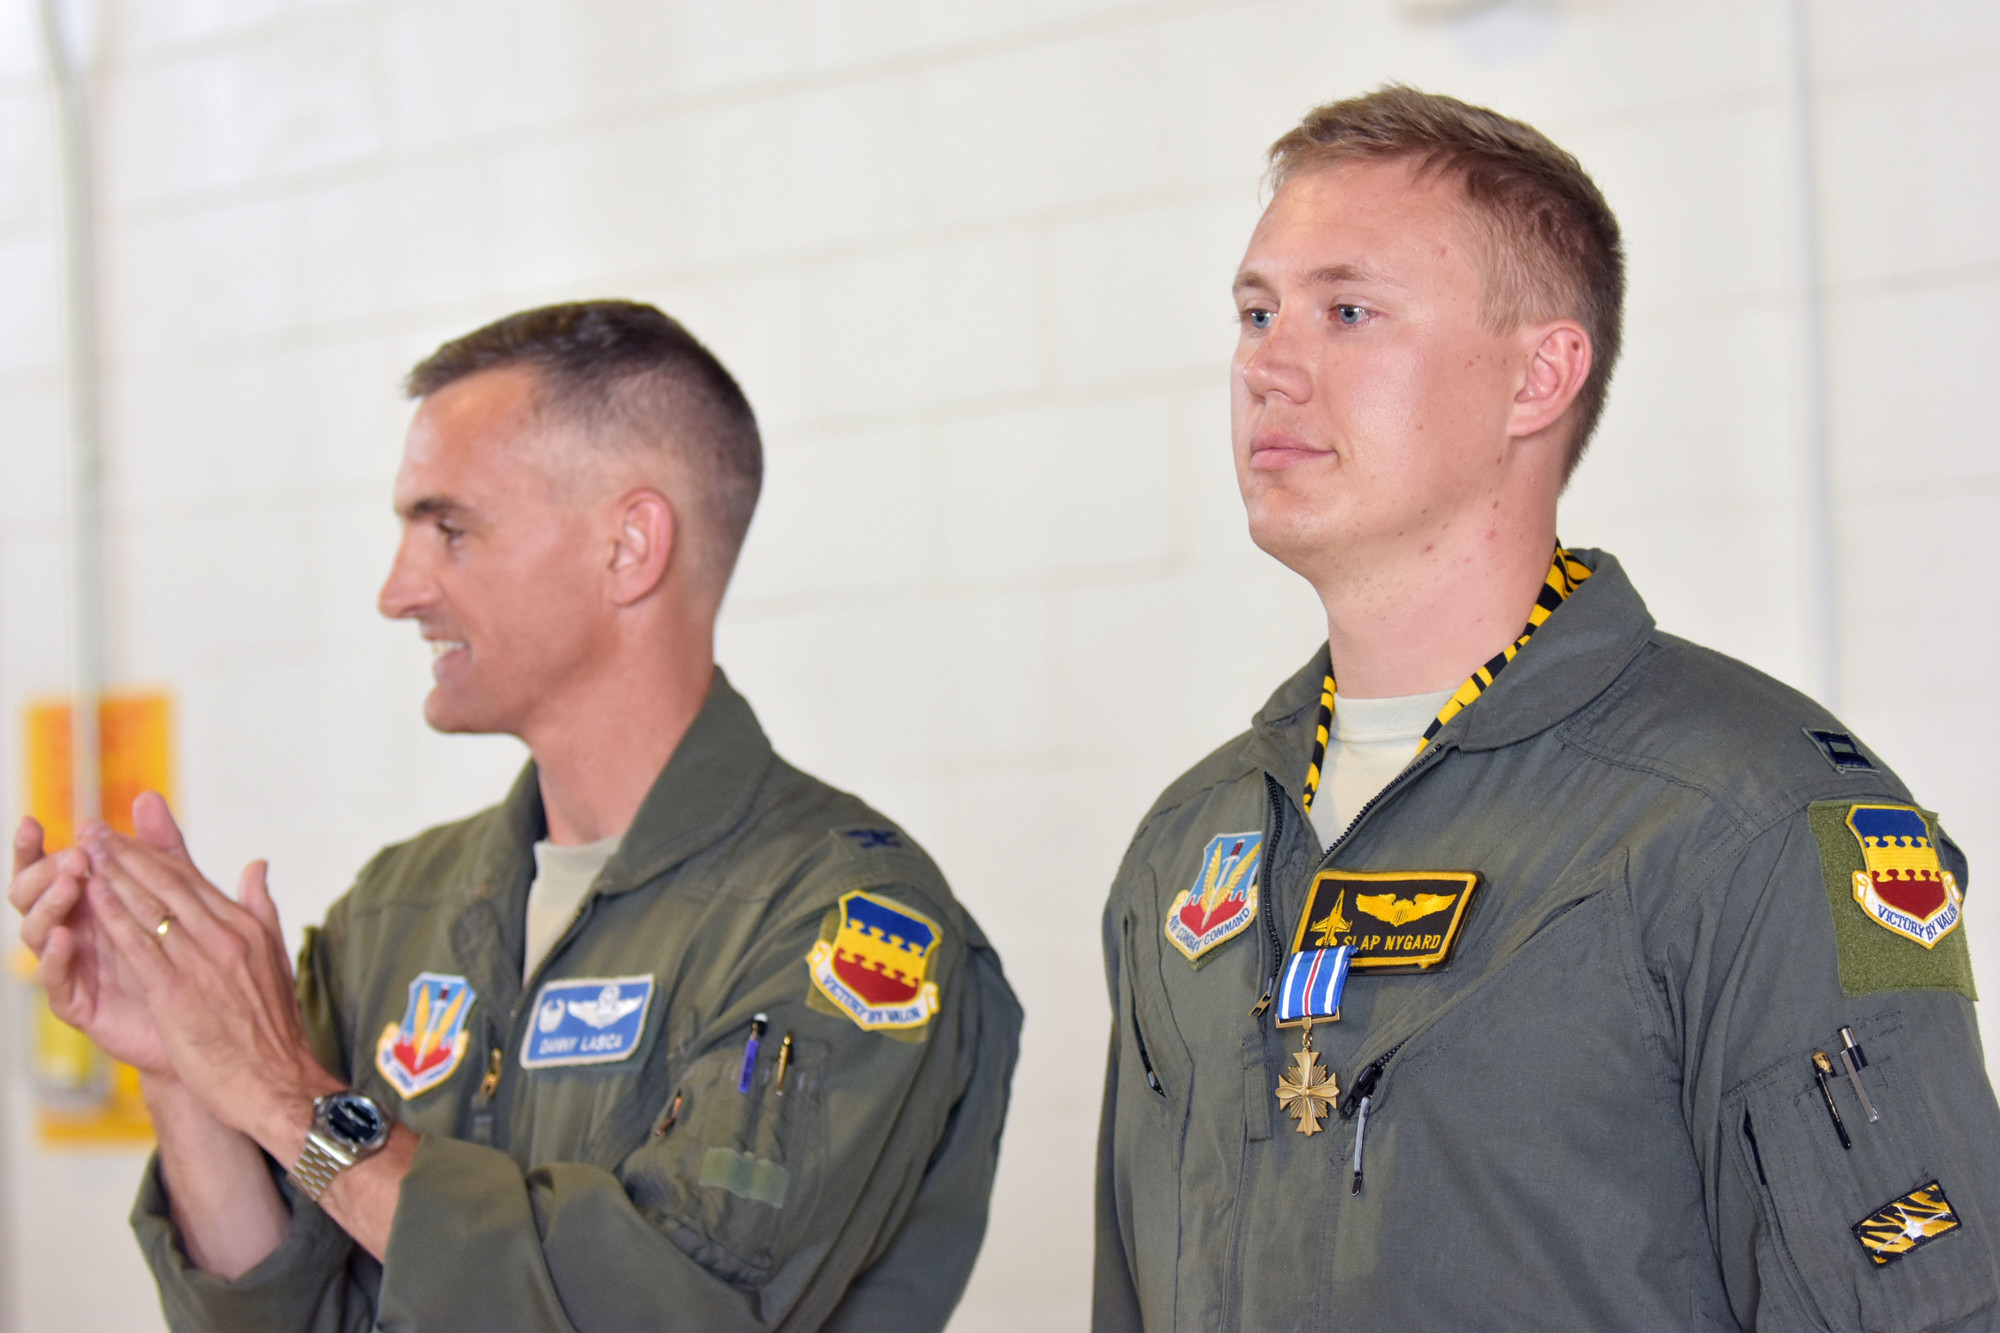 Col. Daniel Lasica applauds Capt. John Nygard after pinning his DFC Medal on Thursday at Shaw Air Force Base.